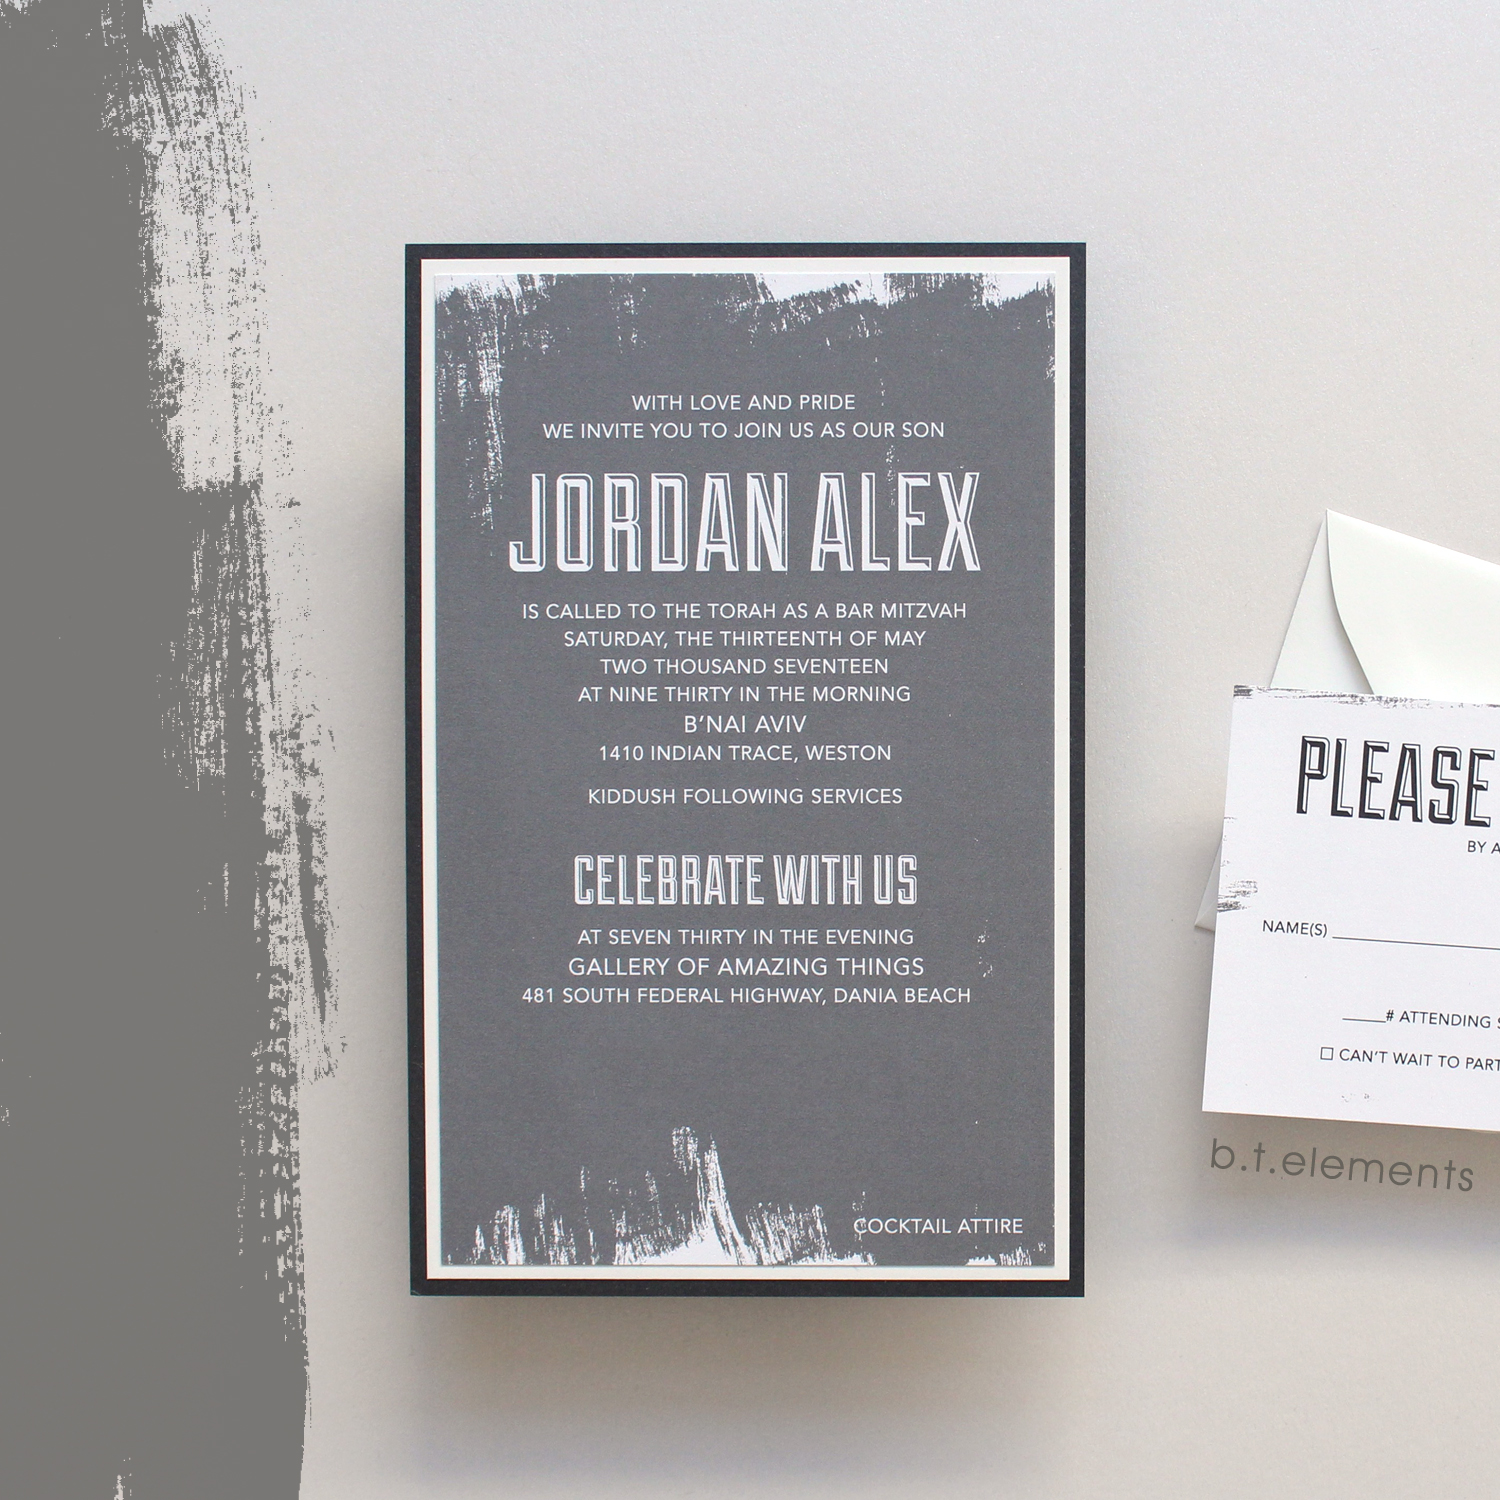 Jordan's Bar Mitzvah Invitation, 2017   Store: Styled Events in Weston, FL